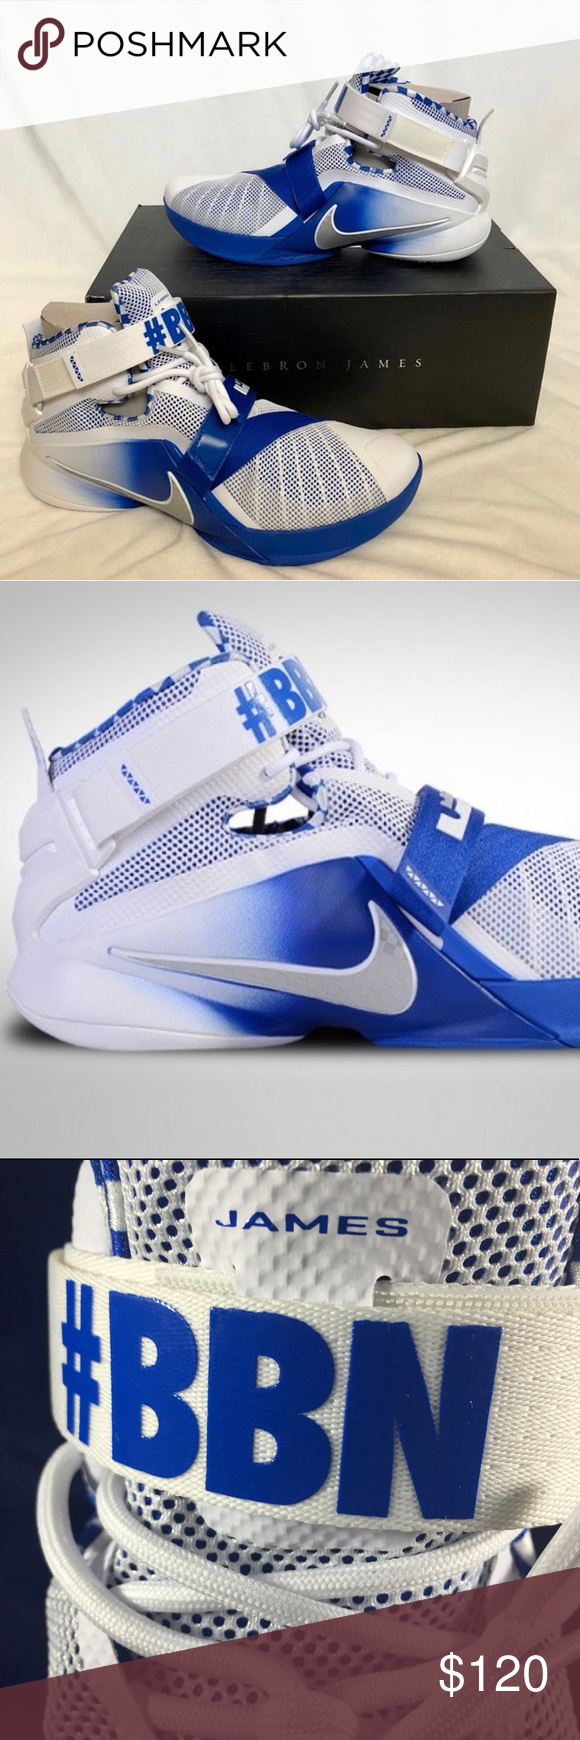 best website 114ed aa79b Nike Lebron Prime Soldier 9 Basketball Shoes 11.5 Brand new ...